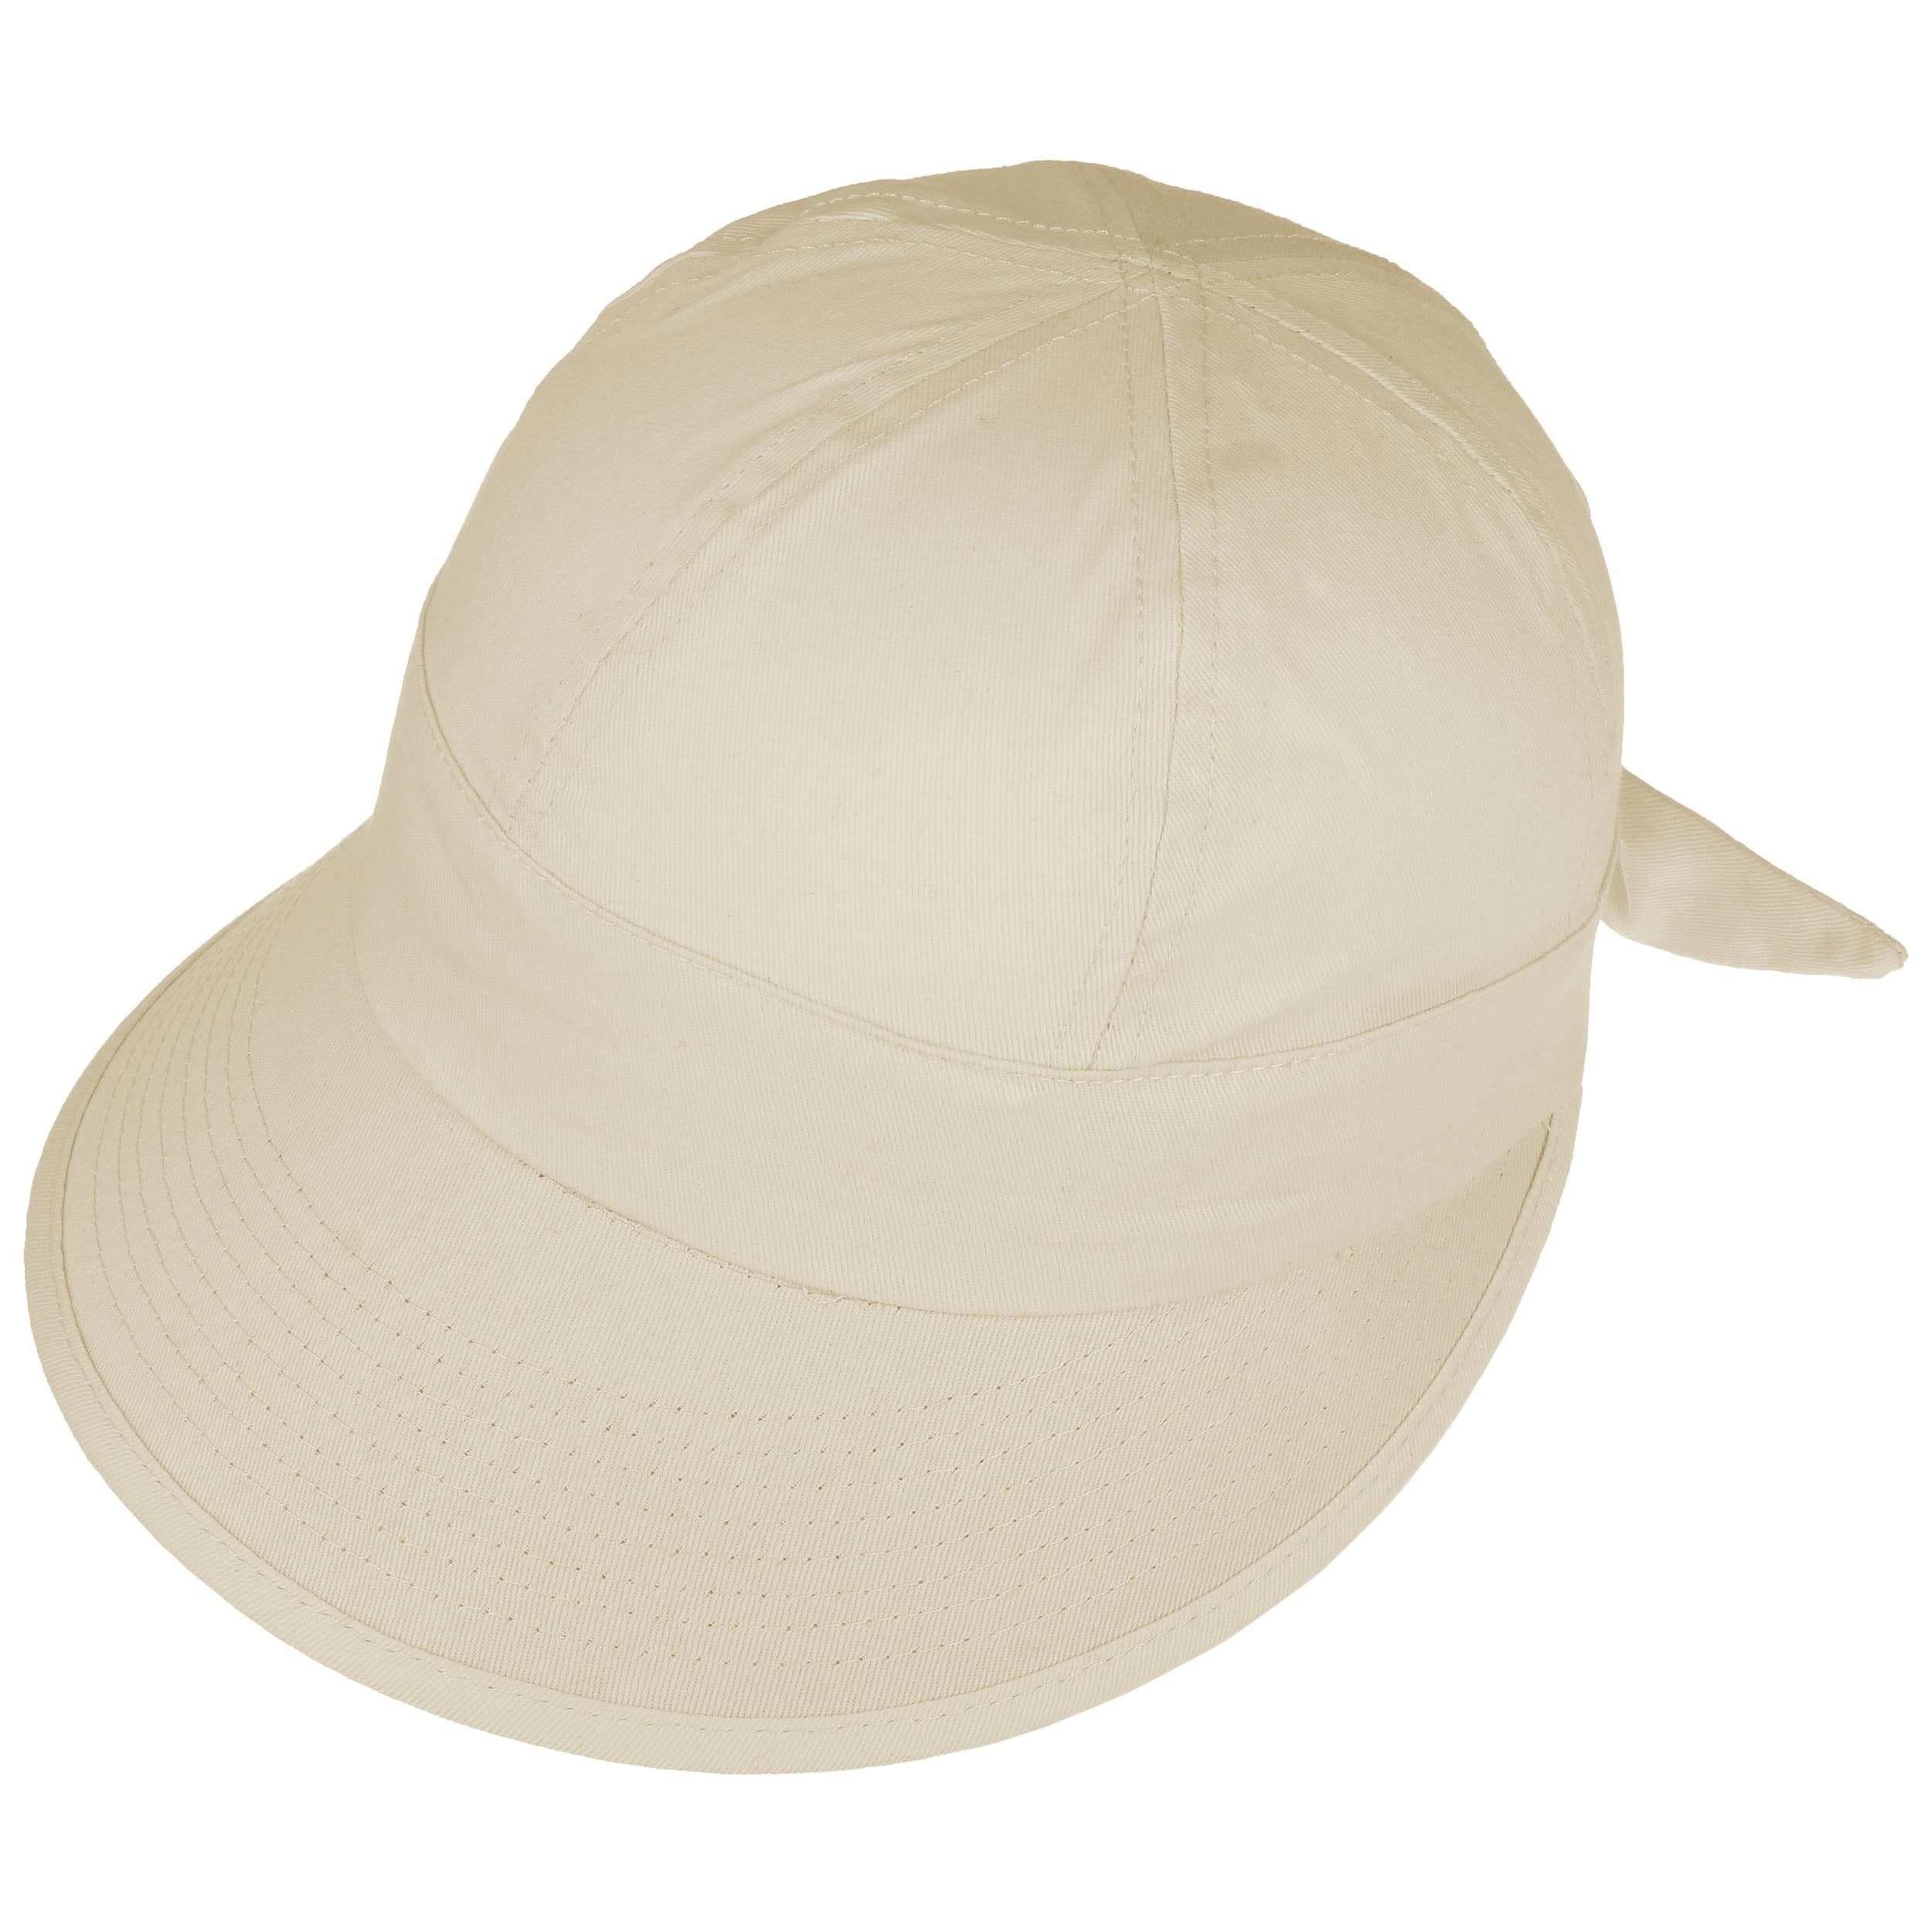 fe8fd007864073 ... Sunshine Cap by Seeberger - cream white 1 ...